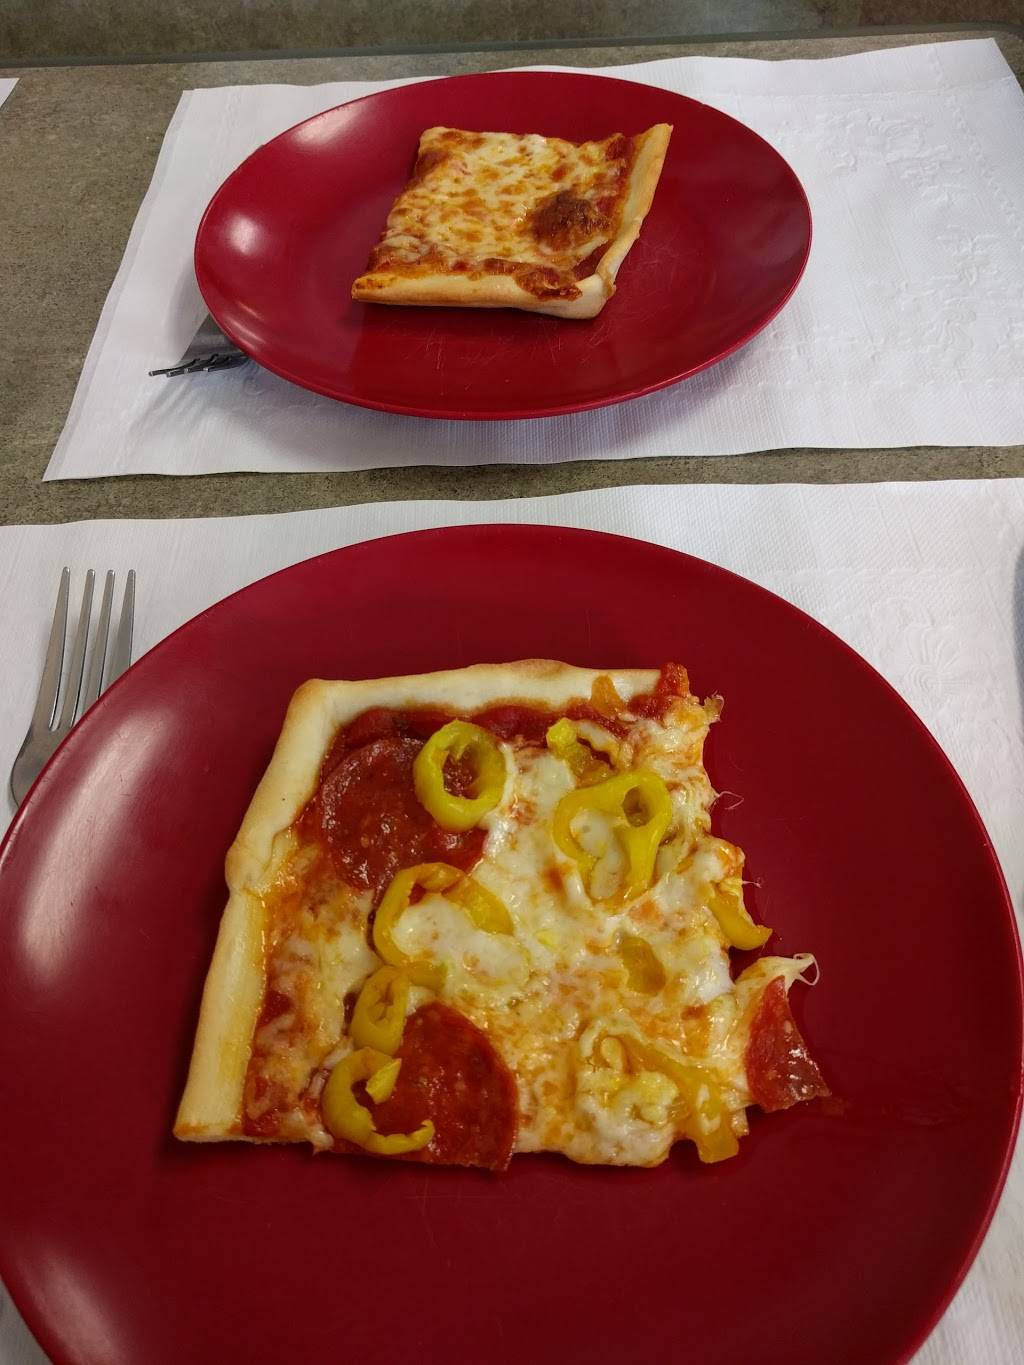 Village Pizza & Subs | restaurant | 217 W Broad St, New Bethlehem, PA 16242, USA | 8142754500 OR +1 814-275-4500